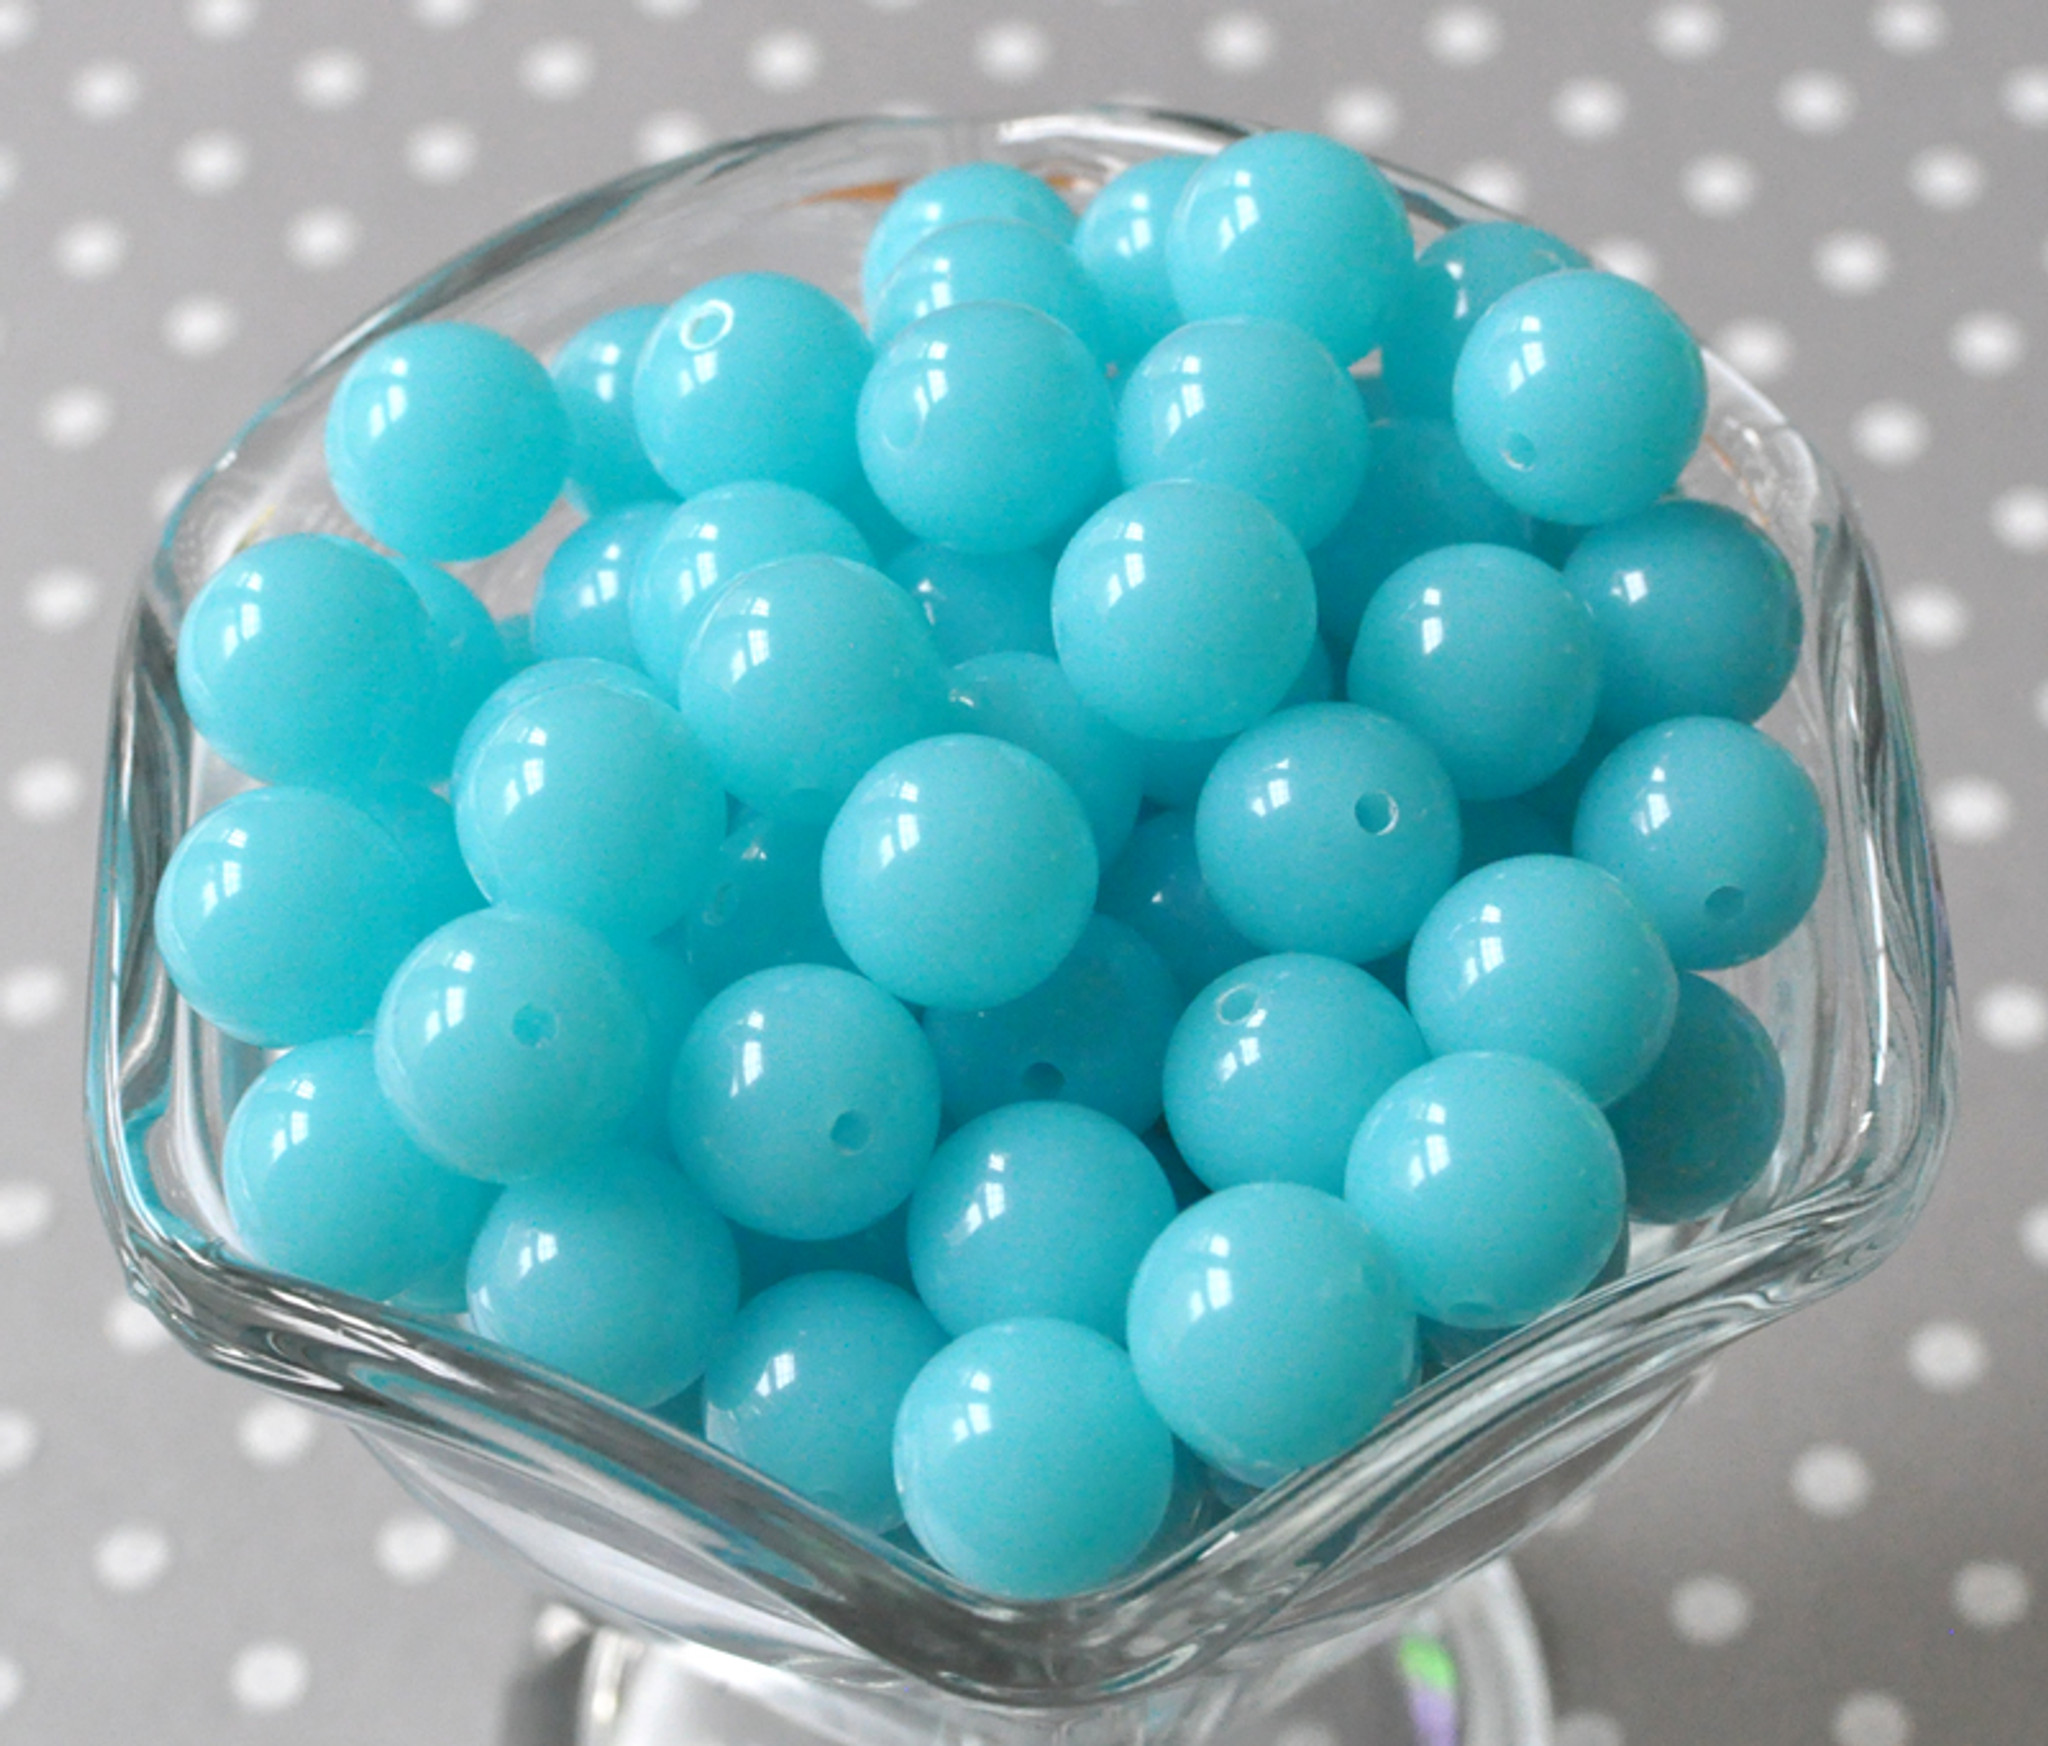 12mm Ocean blue acrylic plastic gumball beads wholesale